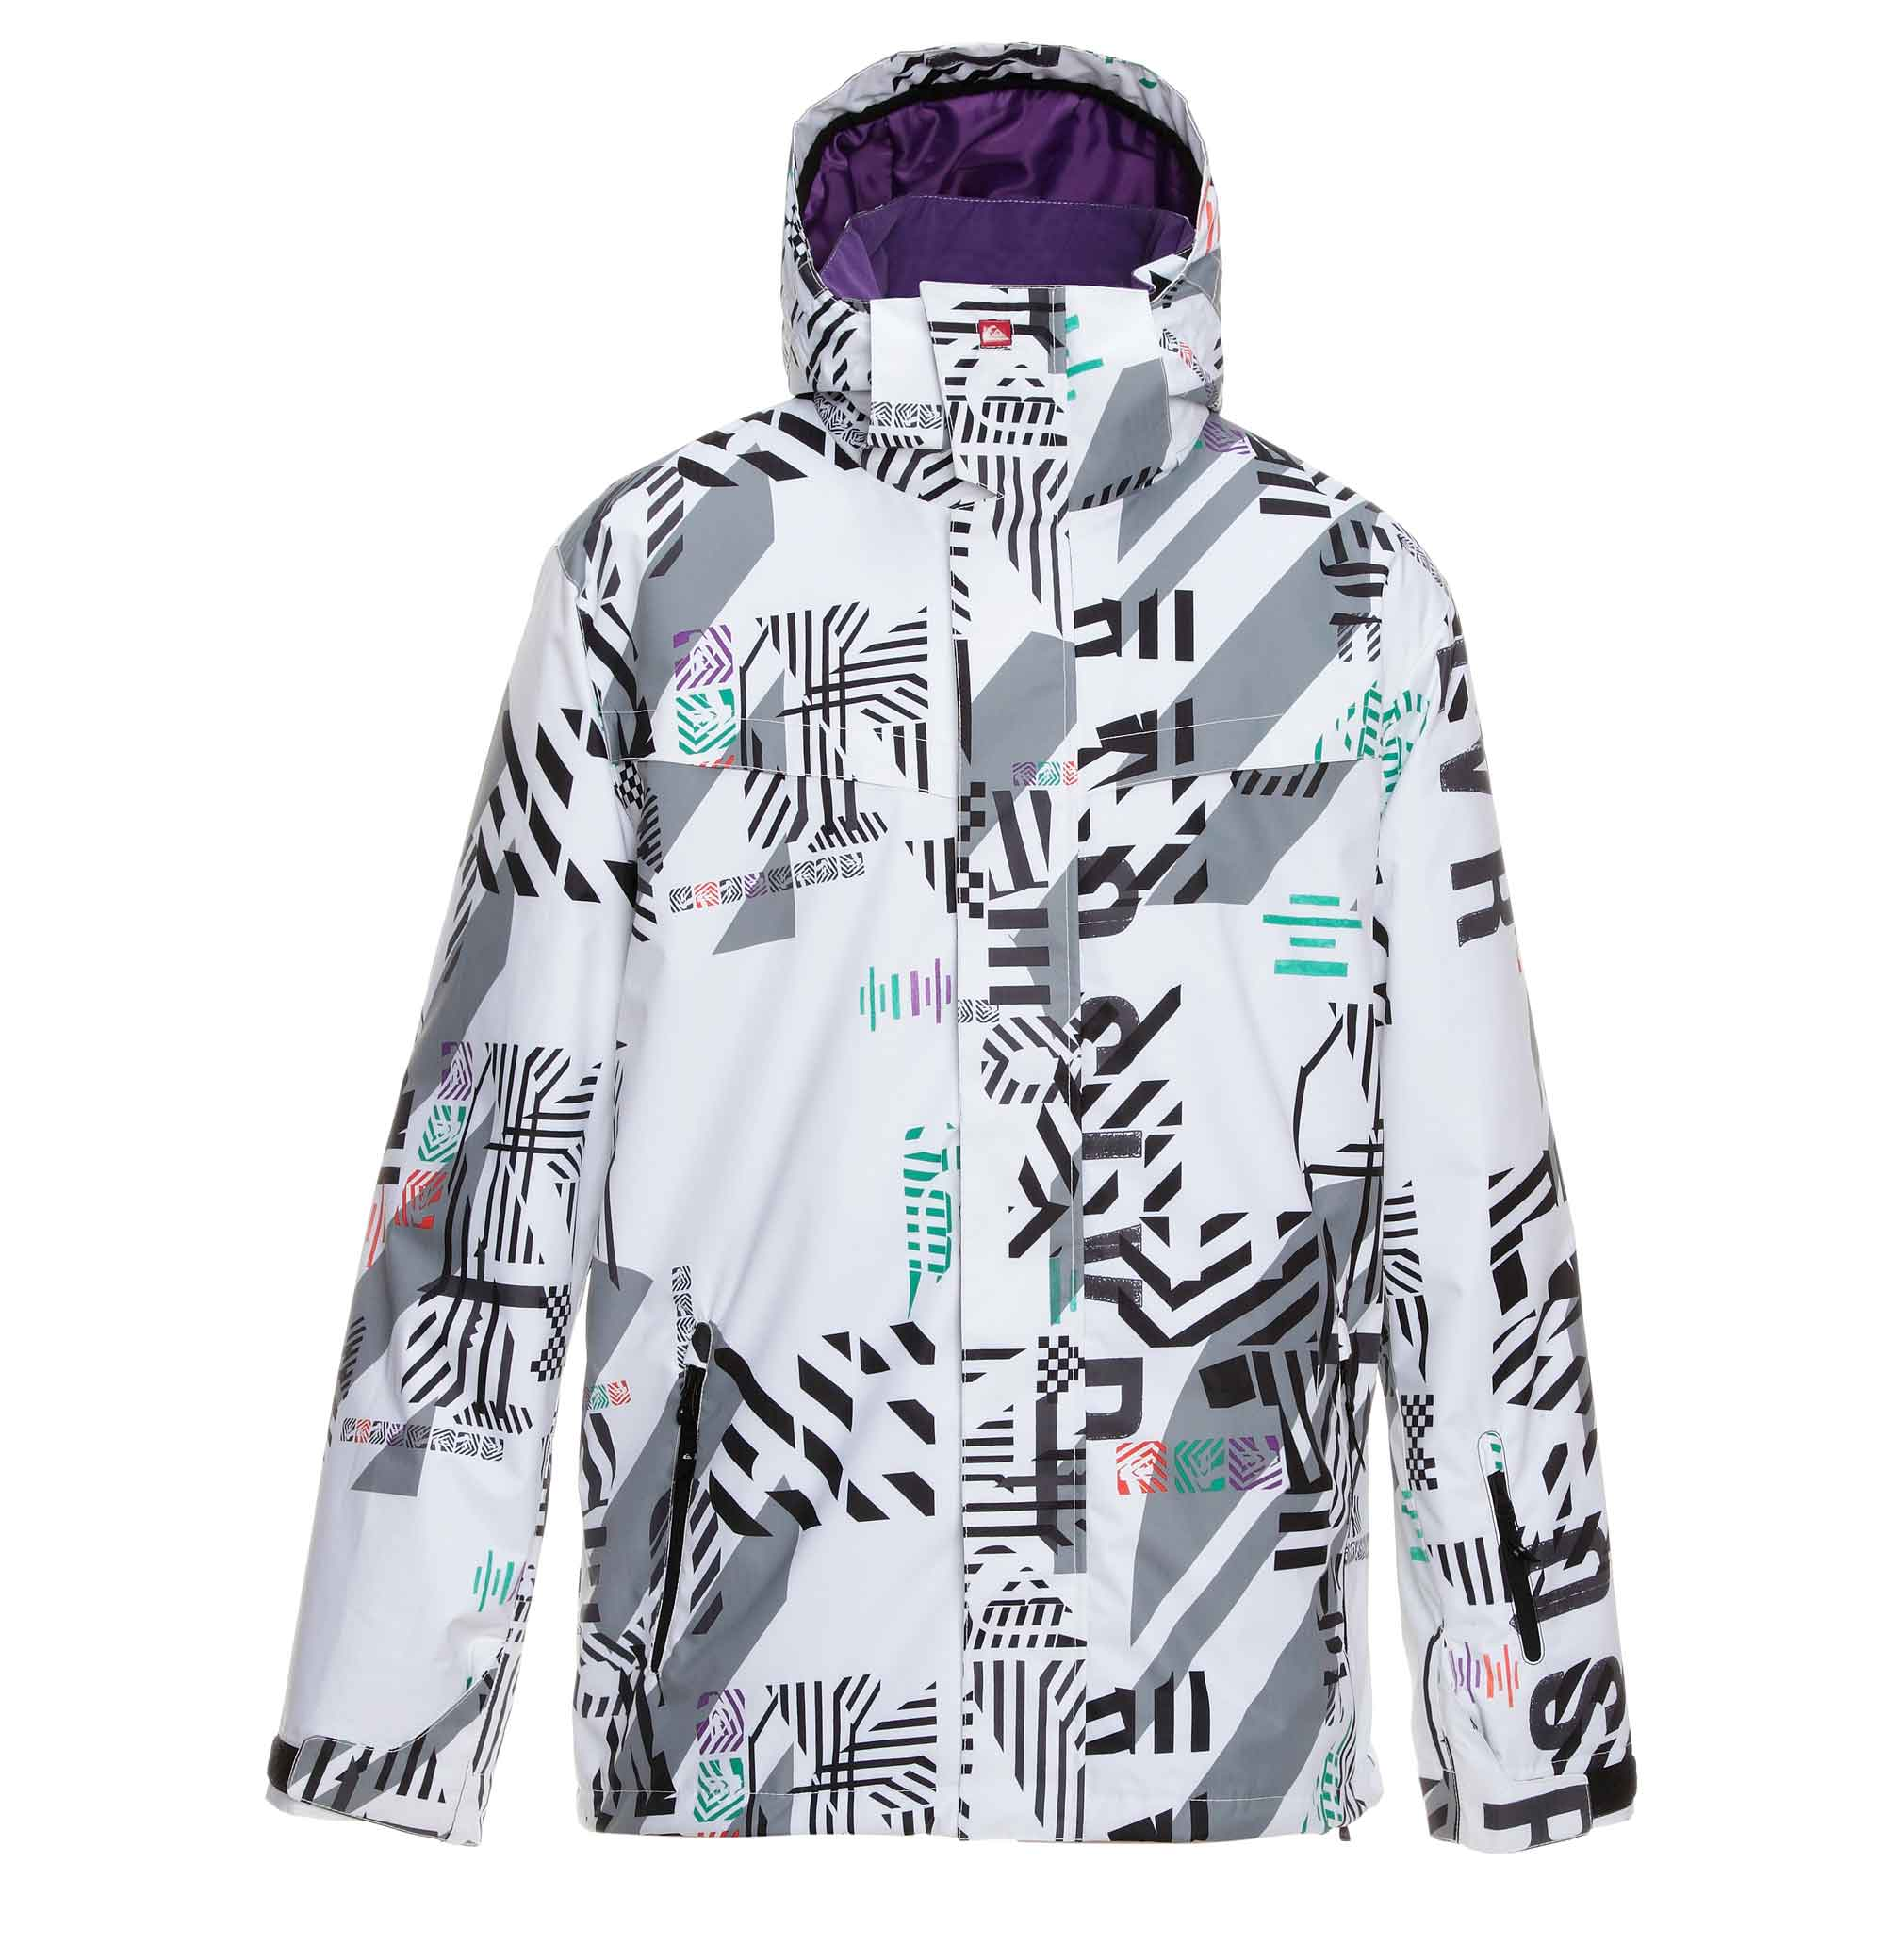 350560c77 Quiksilver Last Mission Print Insulated Ski Jacket in Dazzle